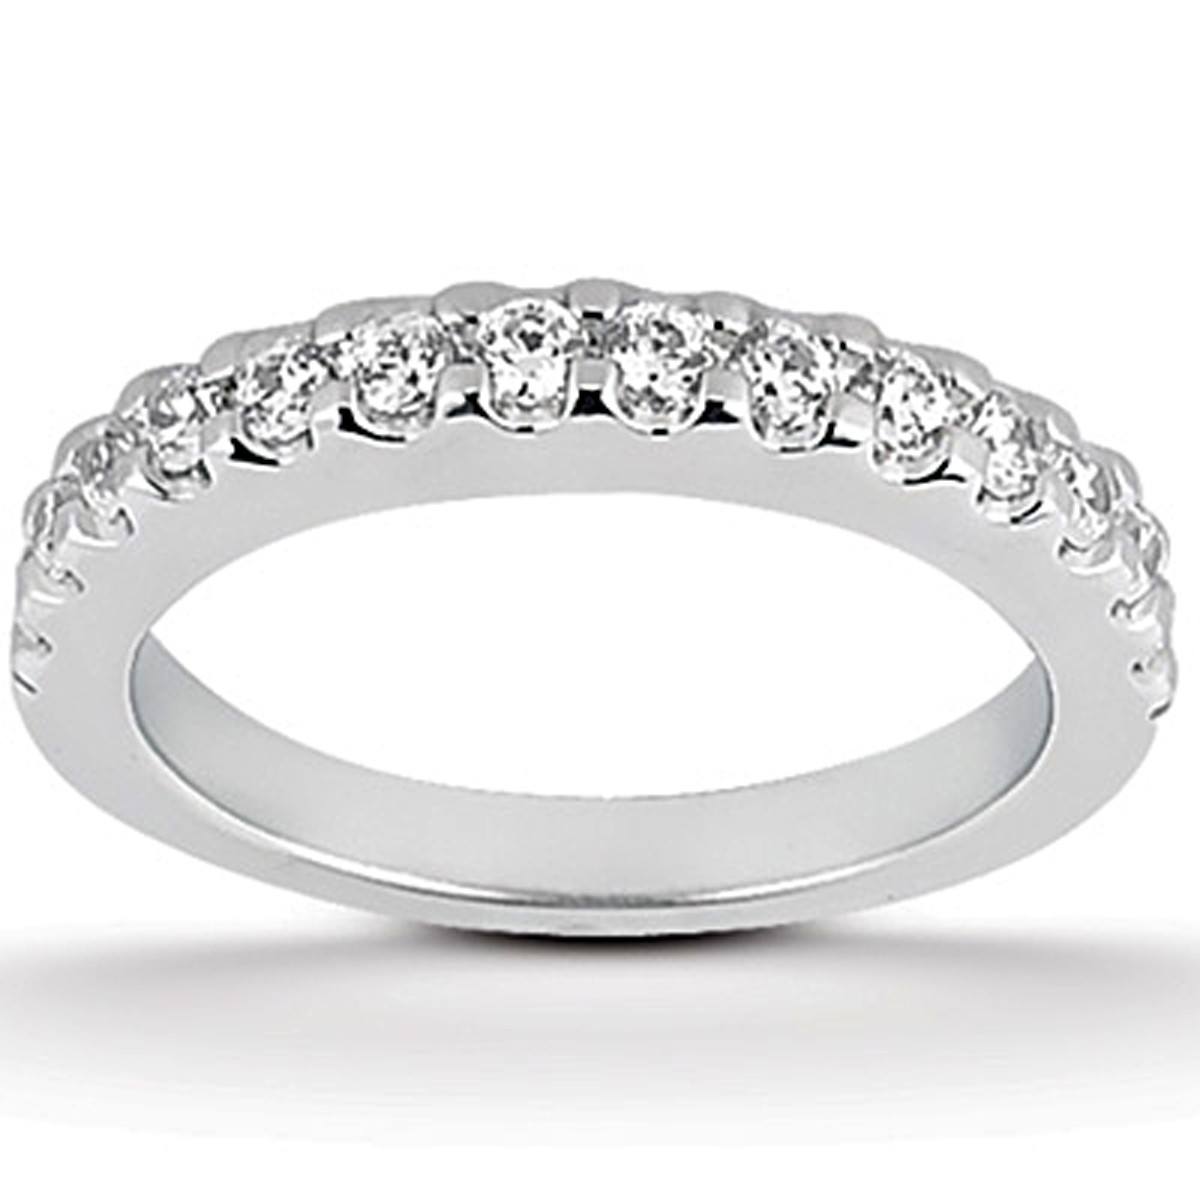 wedding en diamond gold bands white ring jewellery online